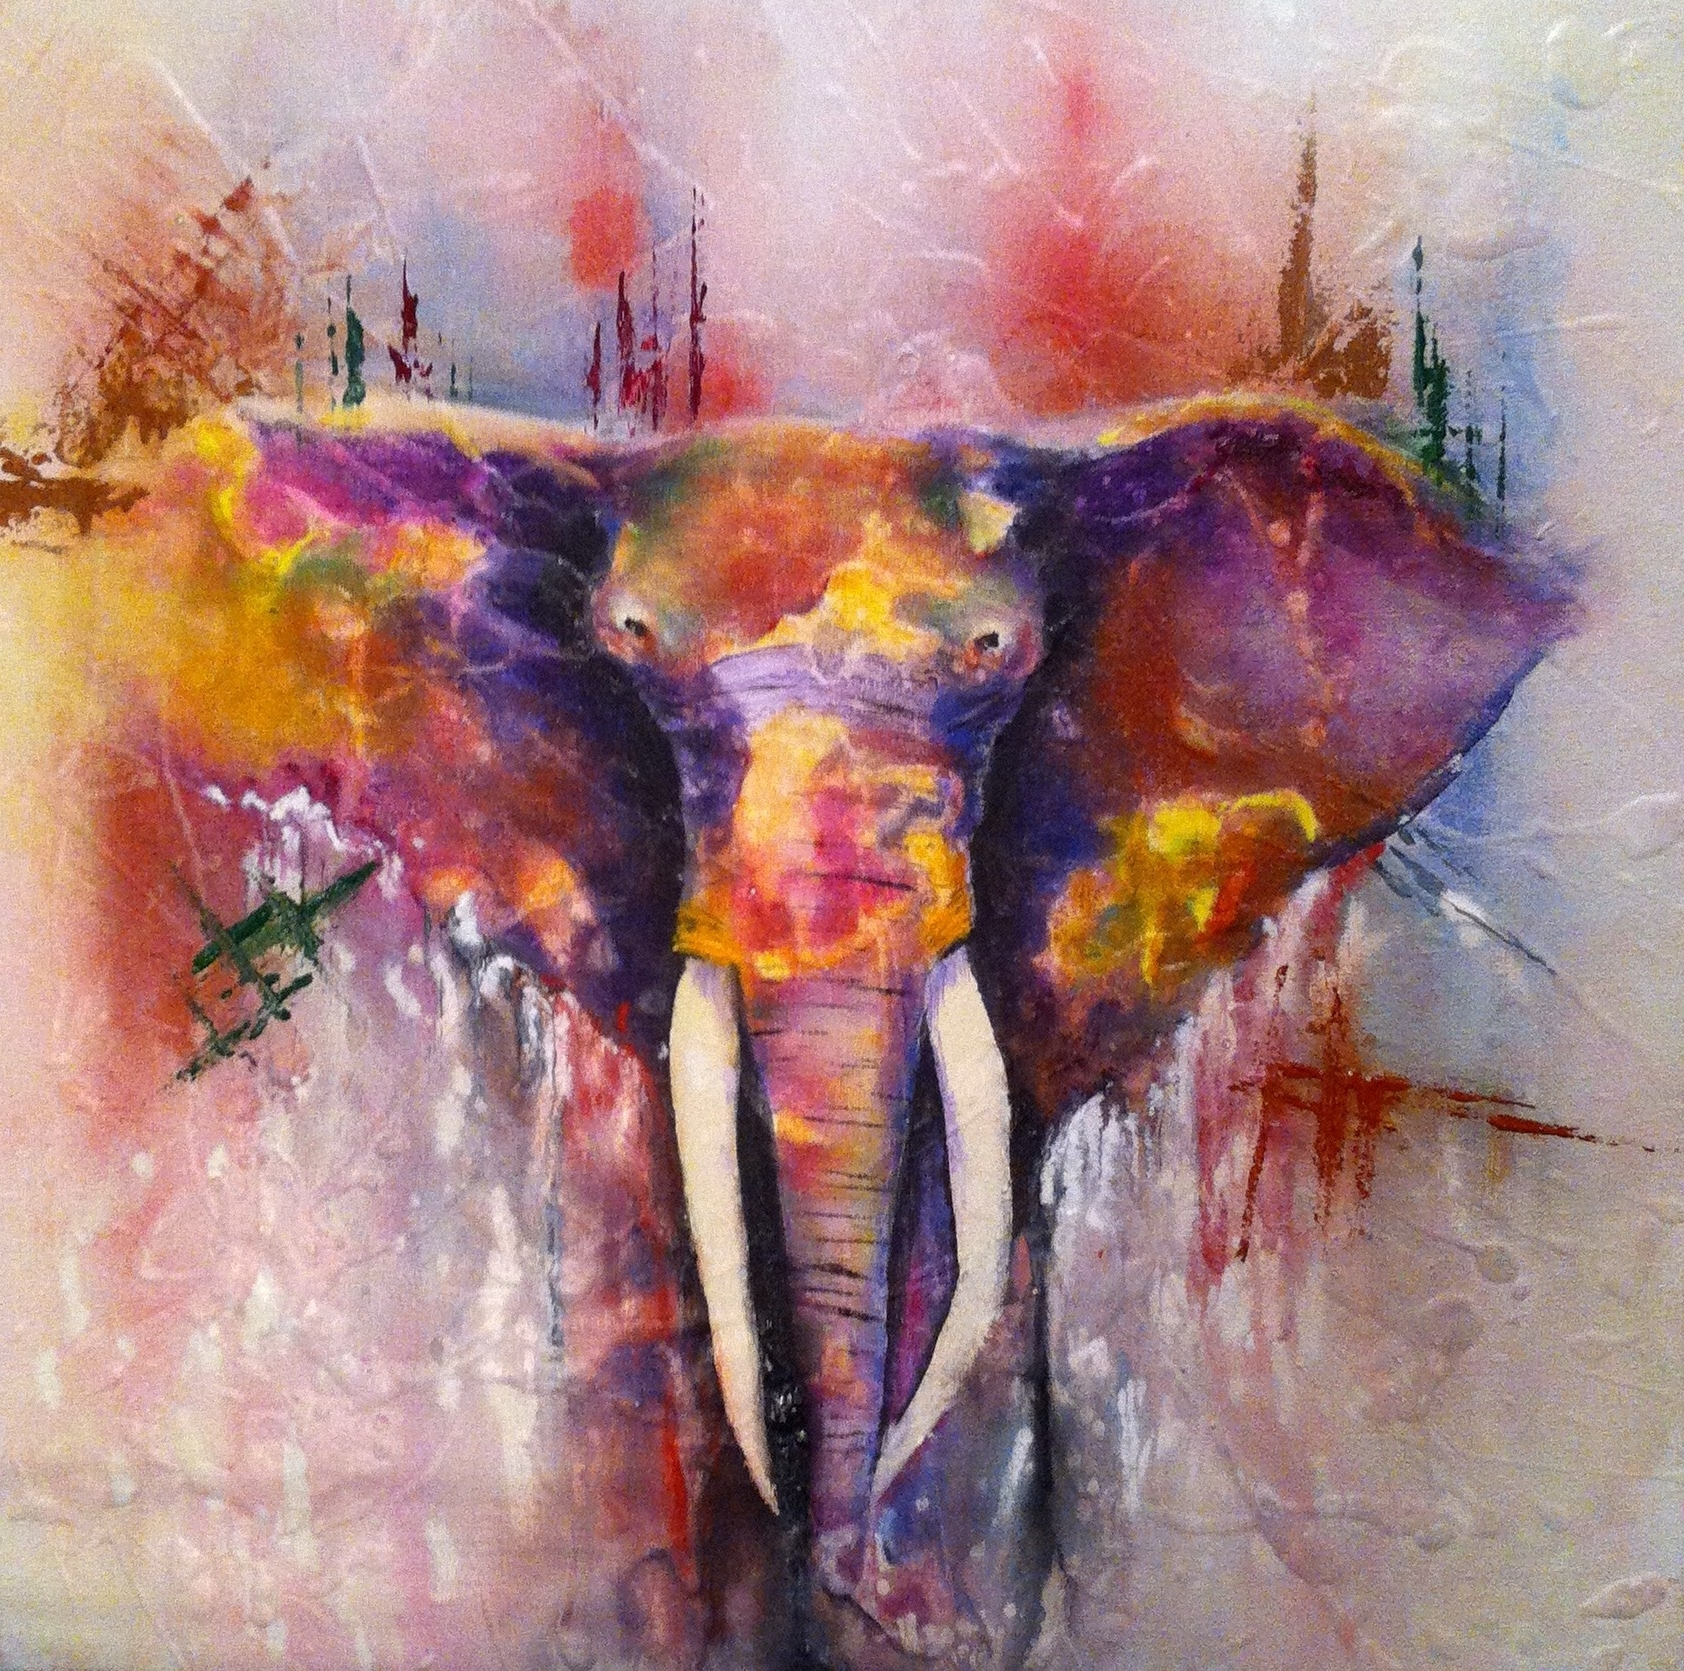 Abstract Elephant Wall Art Within Recent Wall Art Designs: Elephant Canvas Wall Art Abstract Elephant (Gallery 2 of 15)